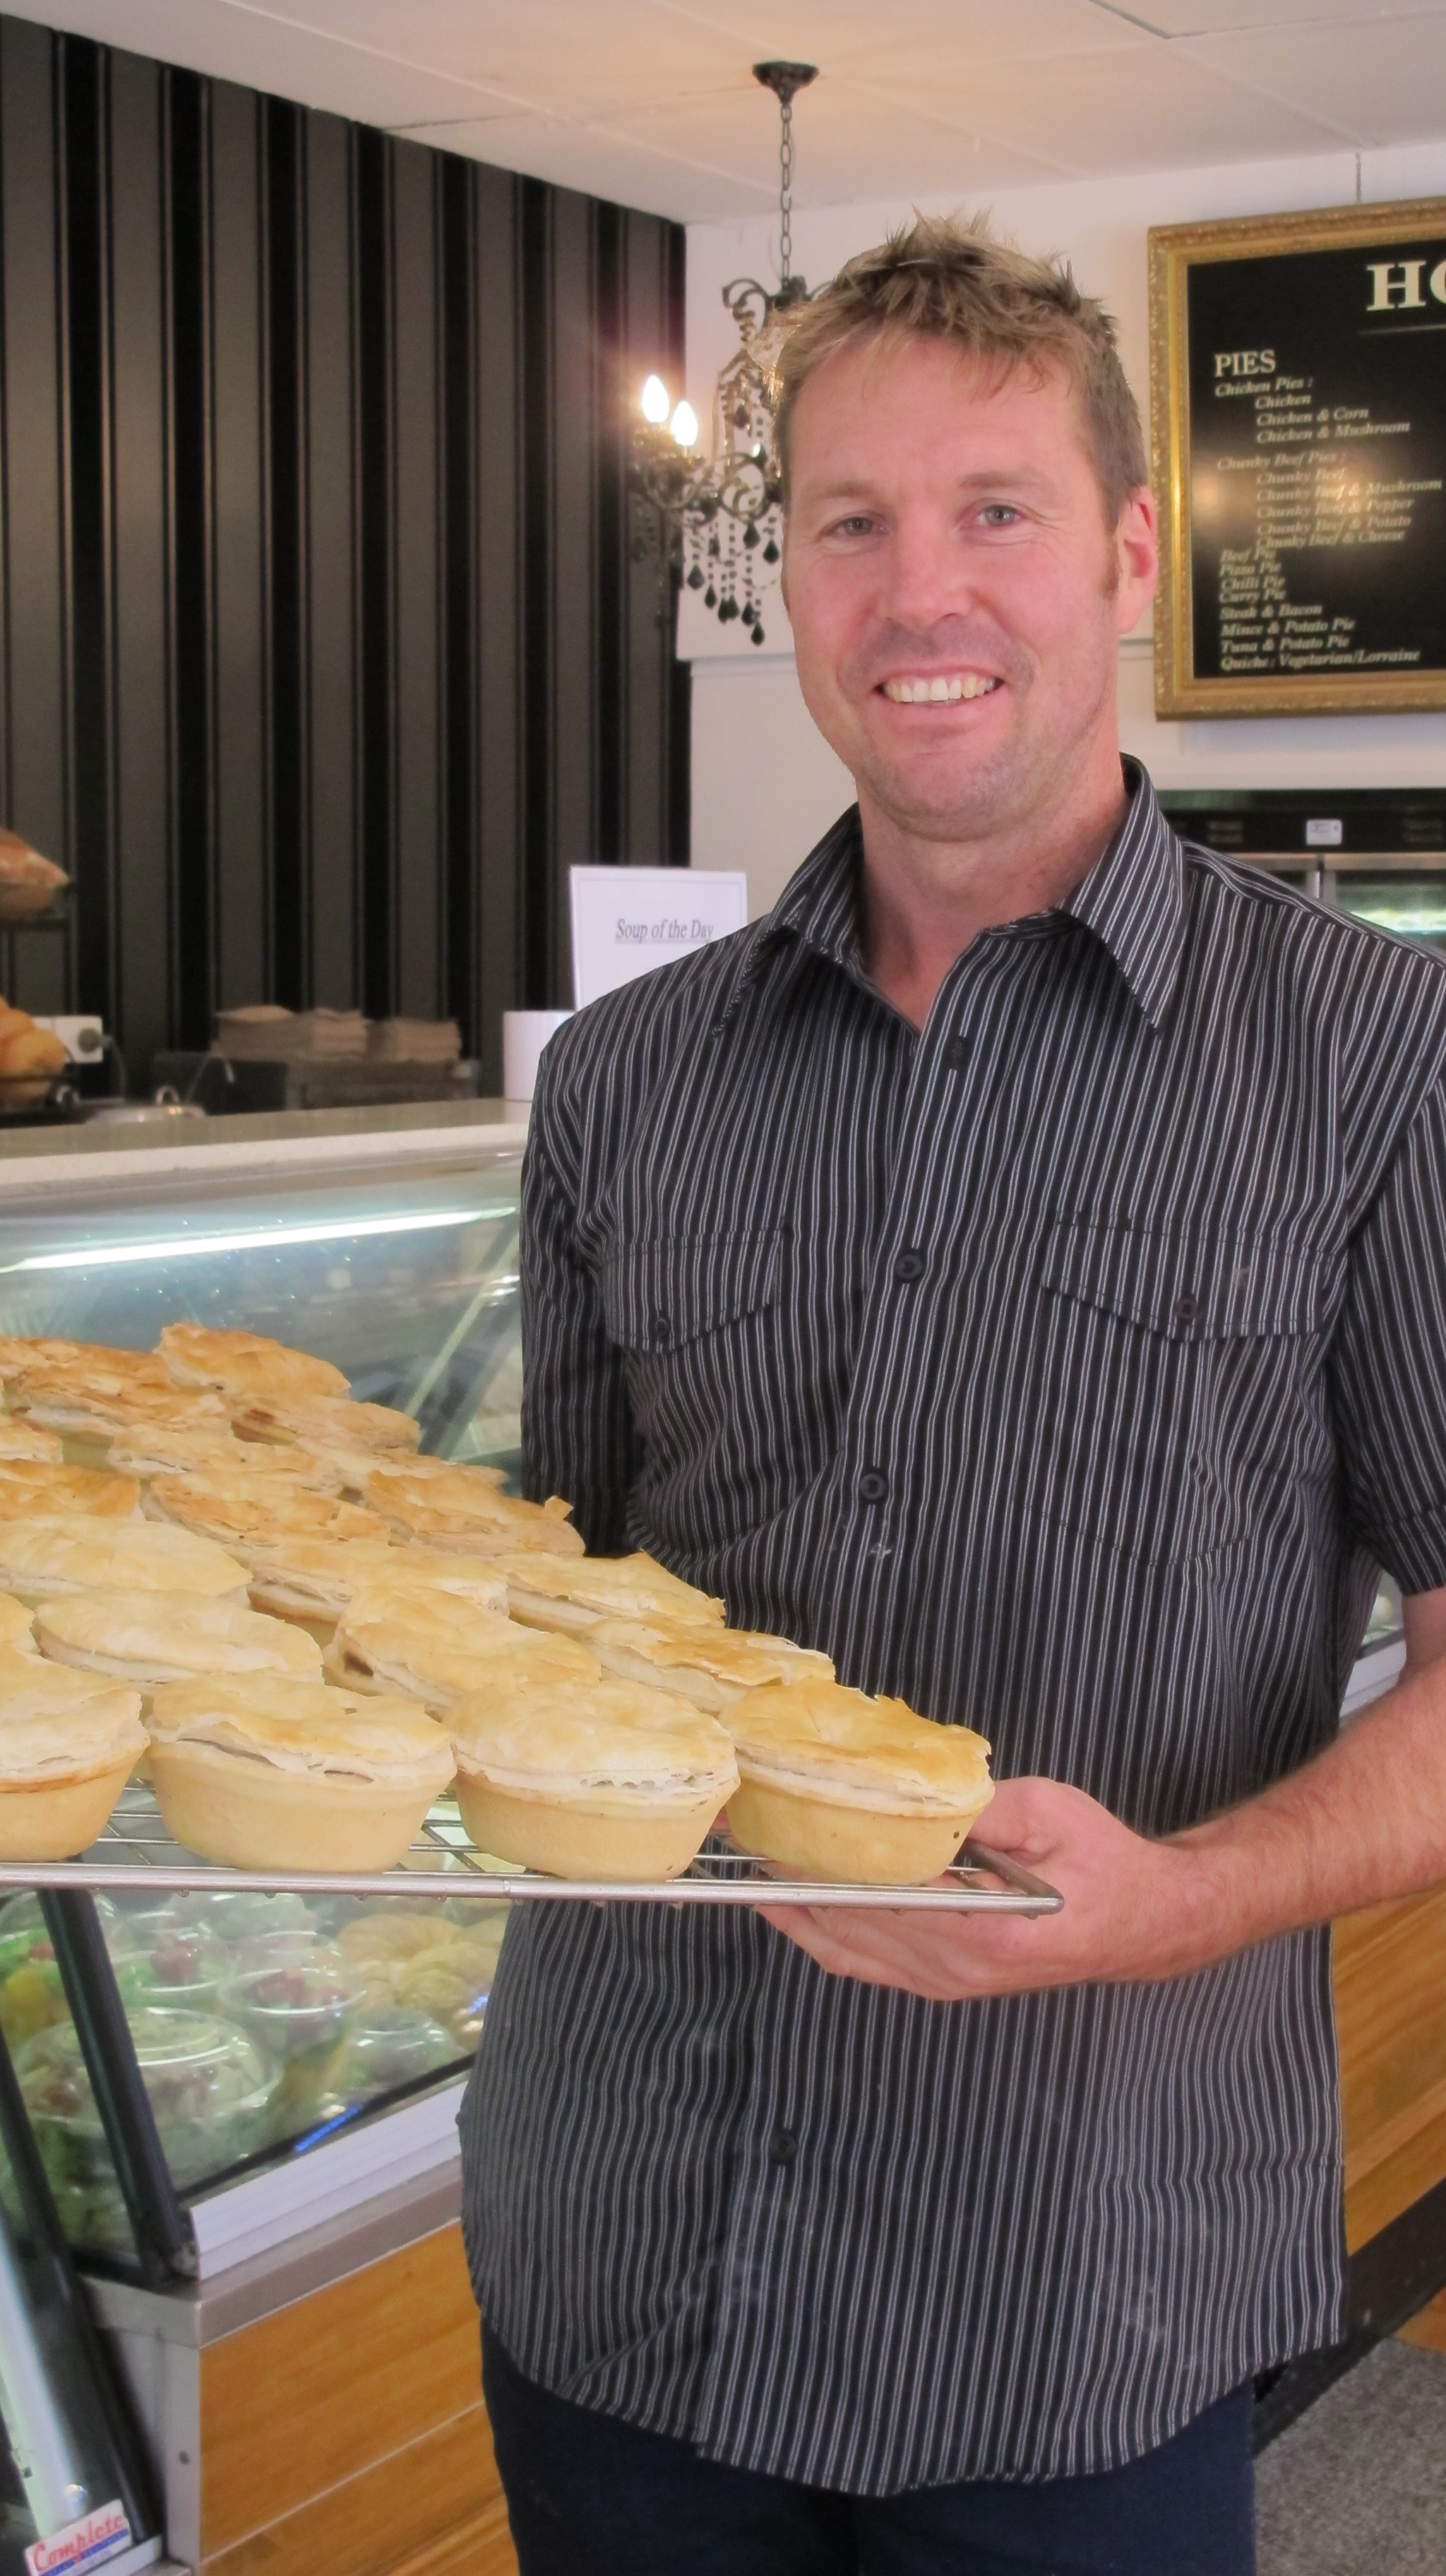 Damian Obst, owner of St Peters Bakehouse with a tray of delicious pies